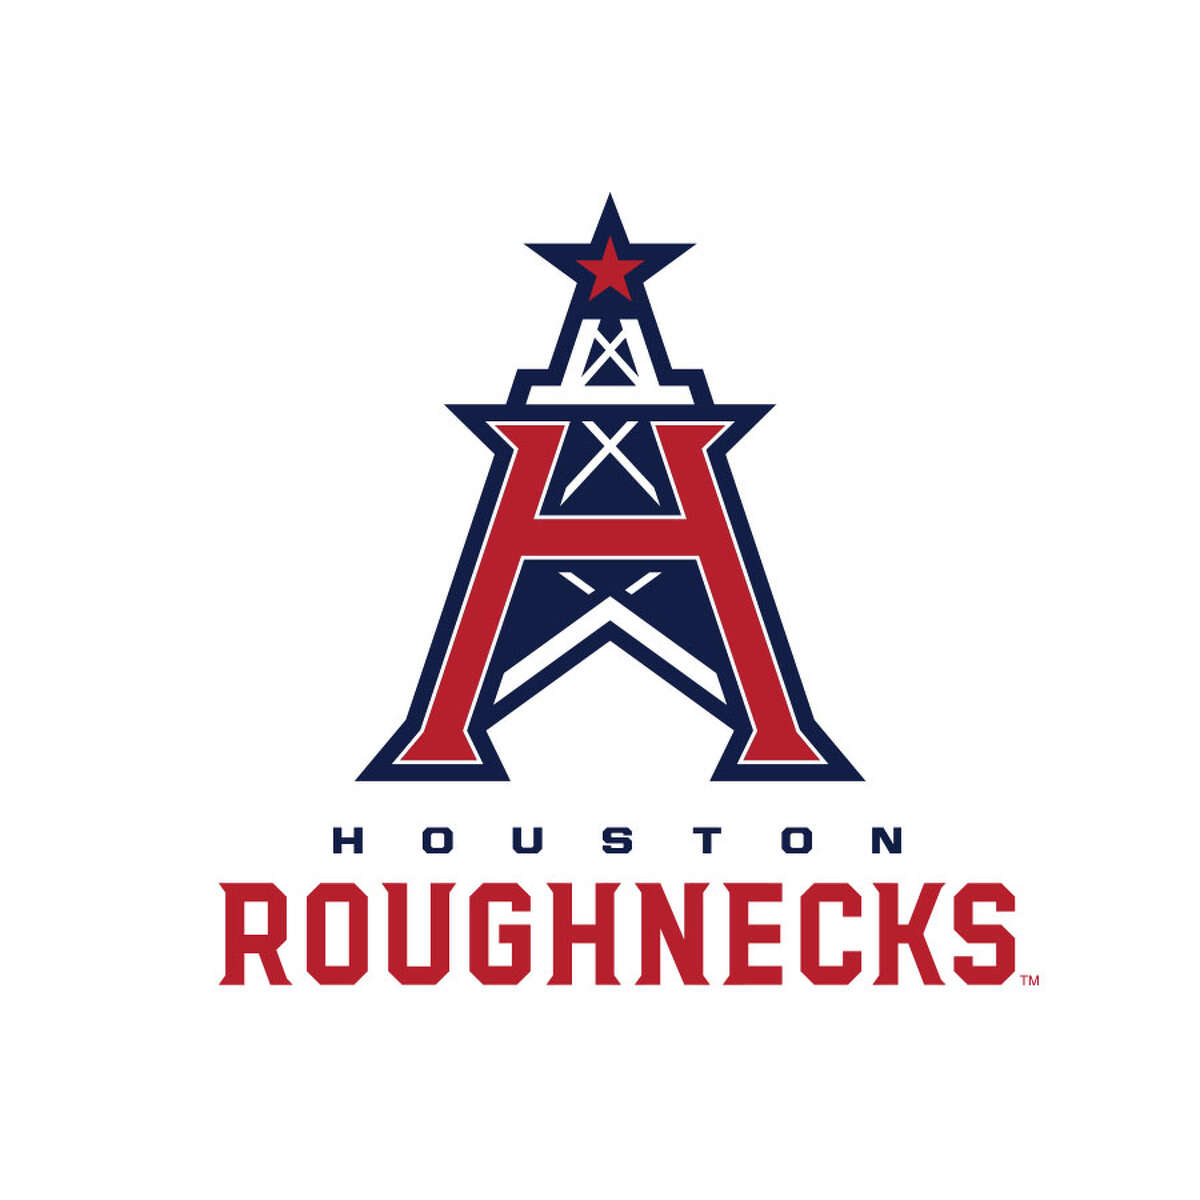 PHOTOS: The name and logo for all eight XFL teams When the XFL kicks off in 2020, the Houston team will be the Roughnecks with a familiar oil derrick as the team's logo. Browse through the photos above for a look at each XFL team's name and logo for the 2020 season ...